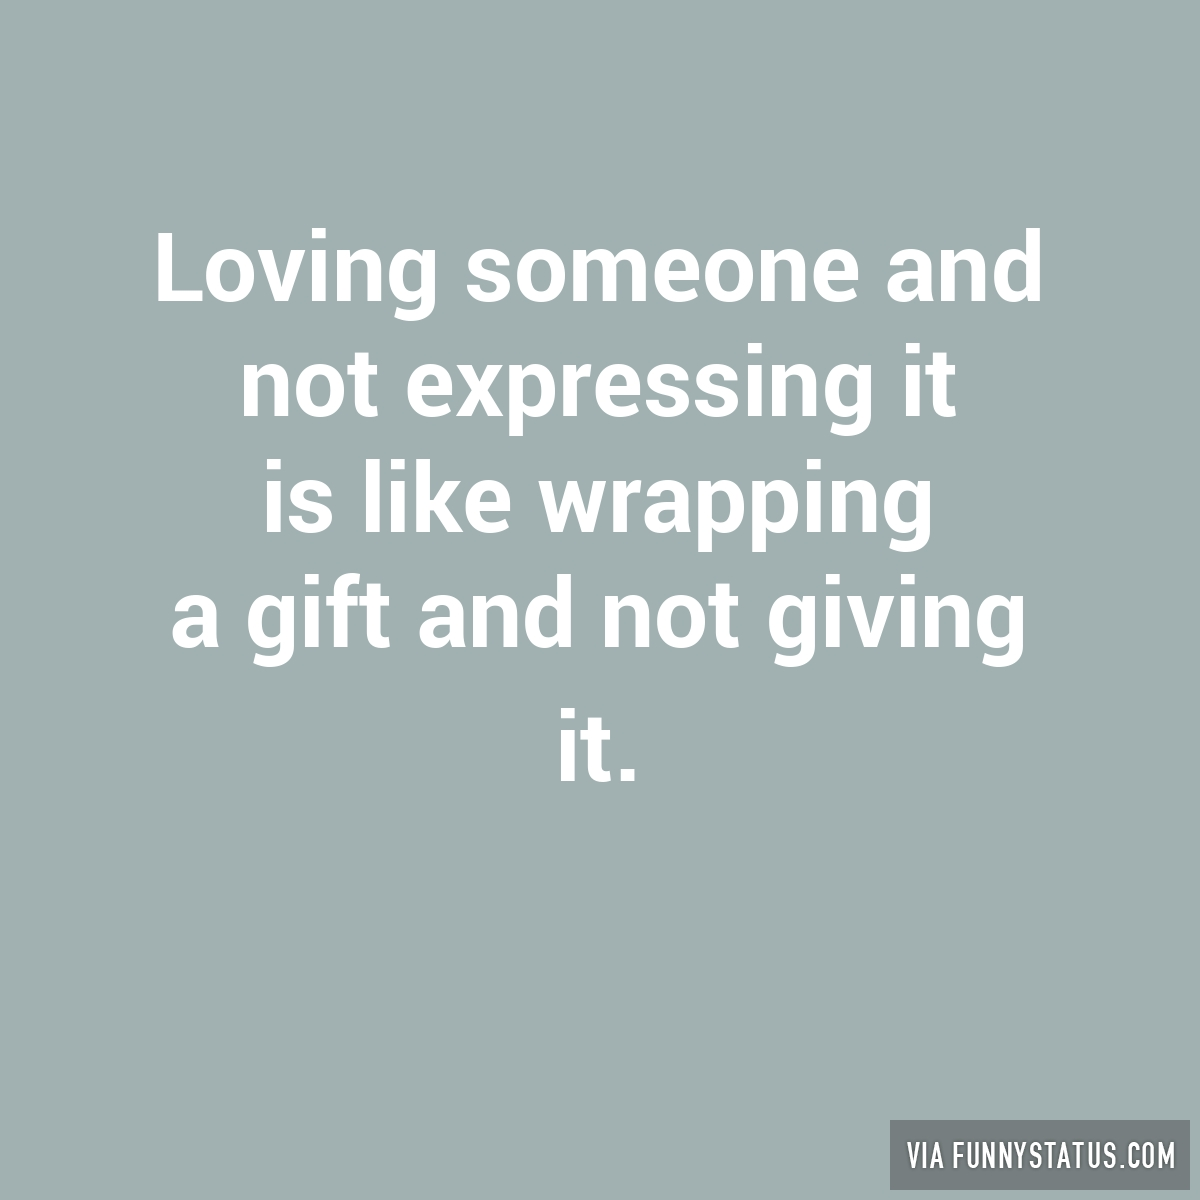 Expressing Love Quotes Loving Someone And Not Expressing It Is Like Wrapping…  Funny Status